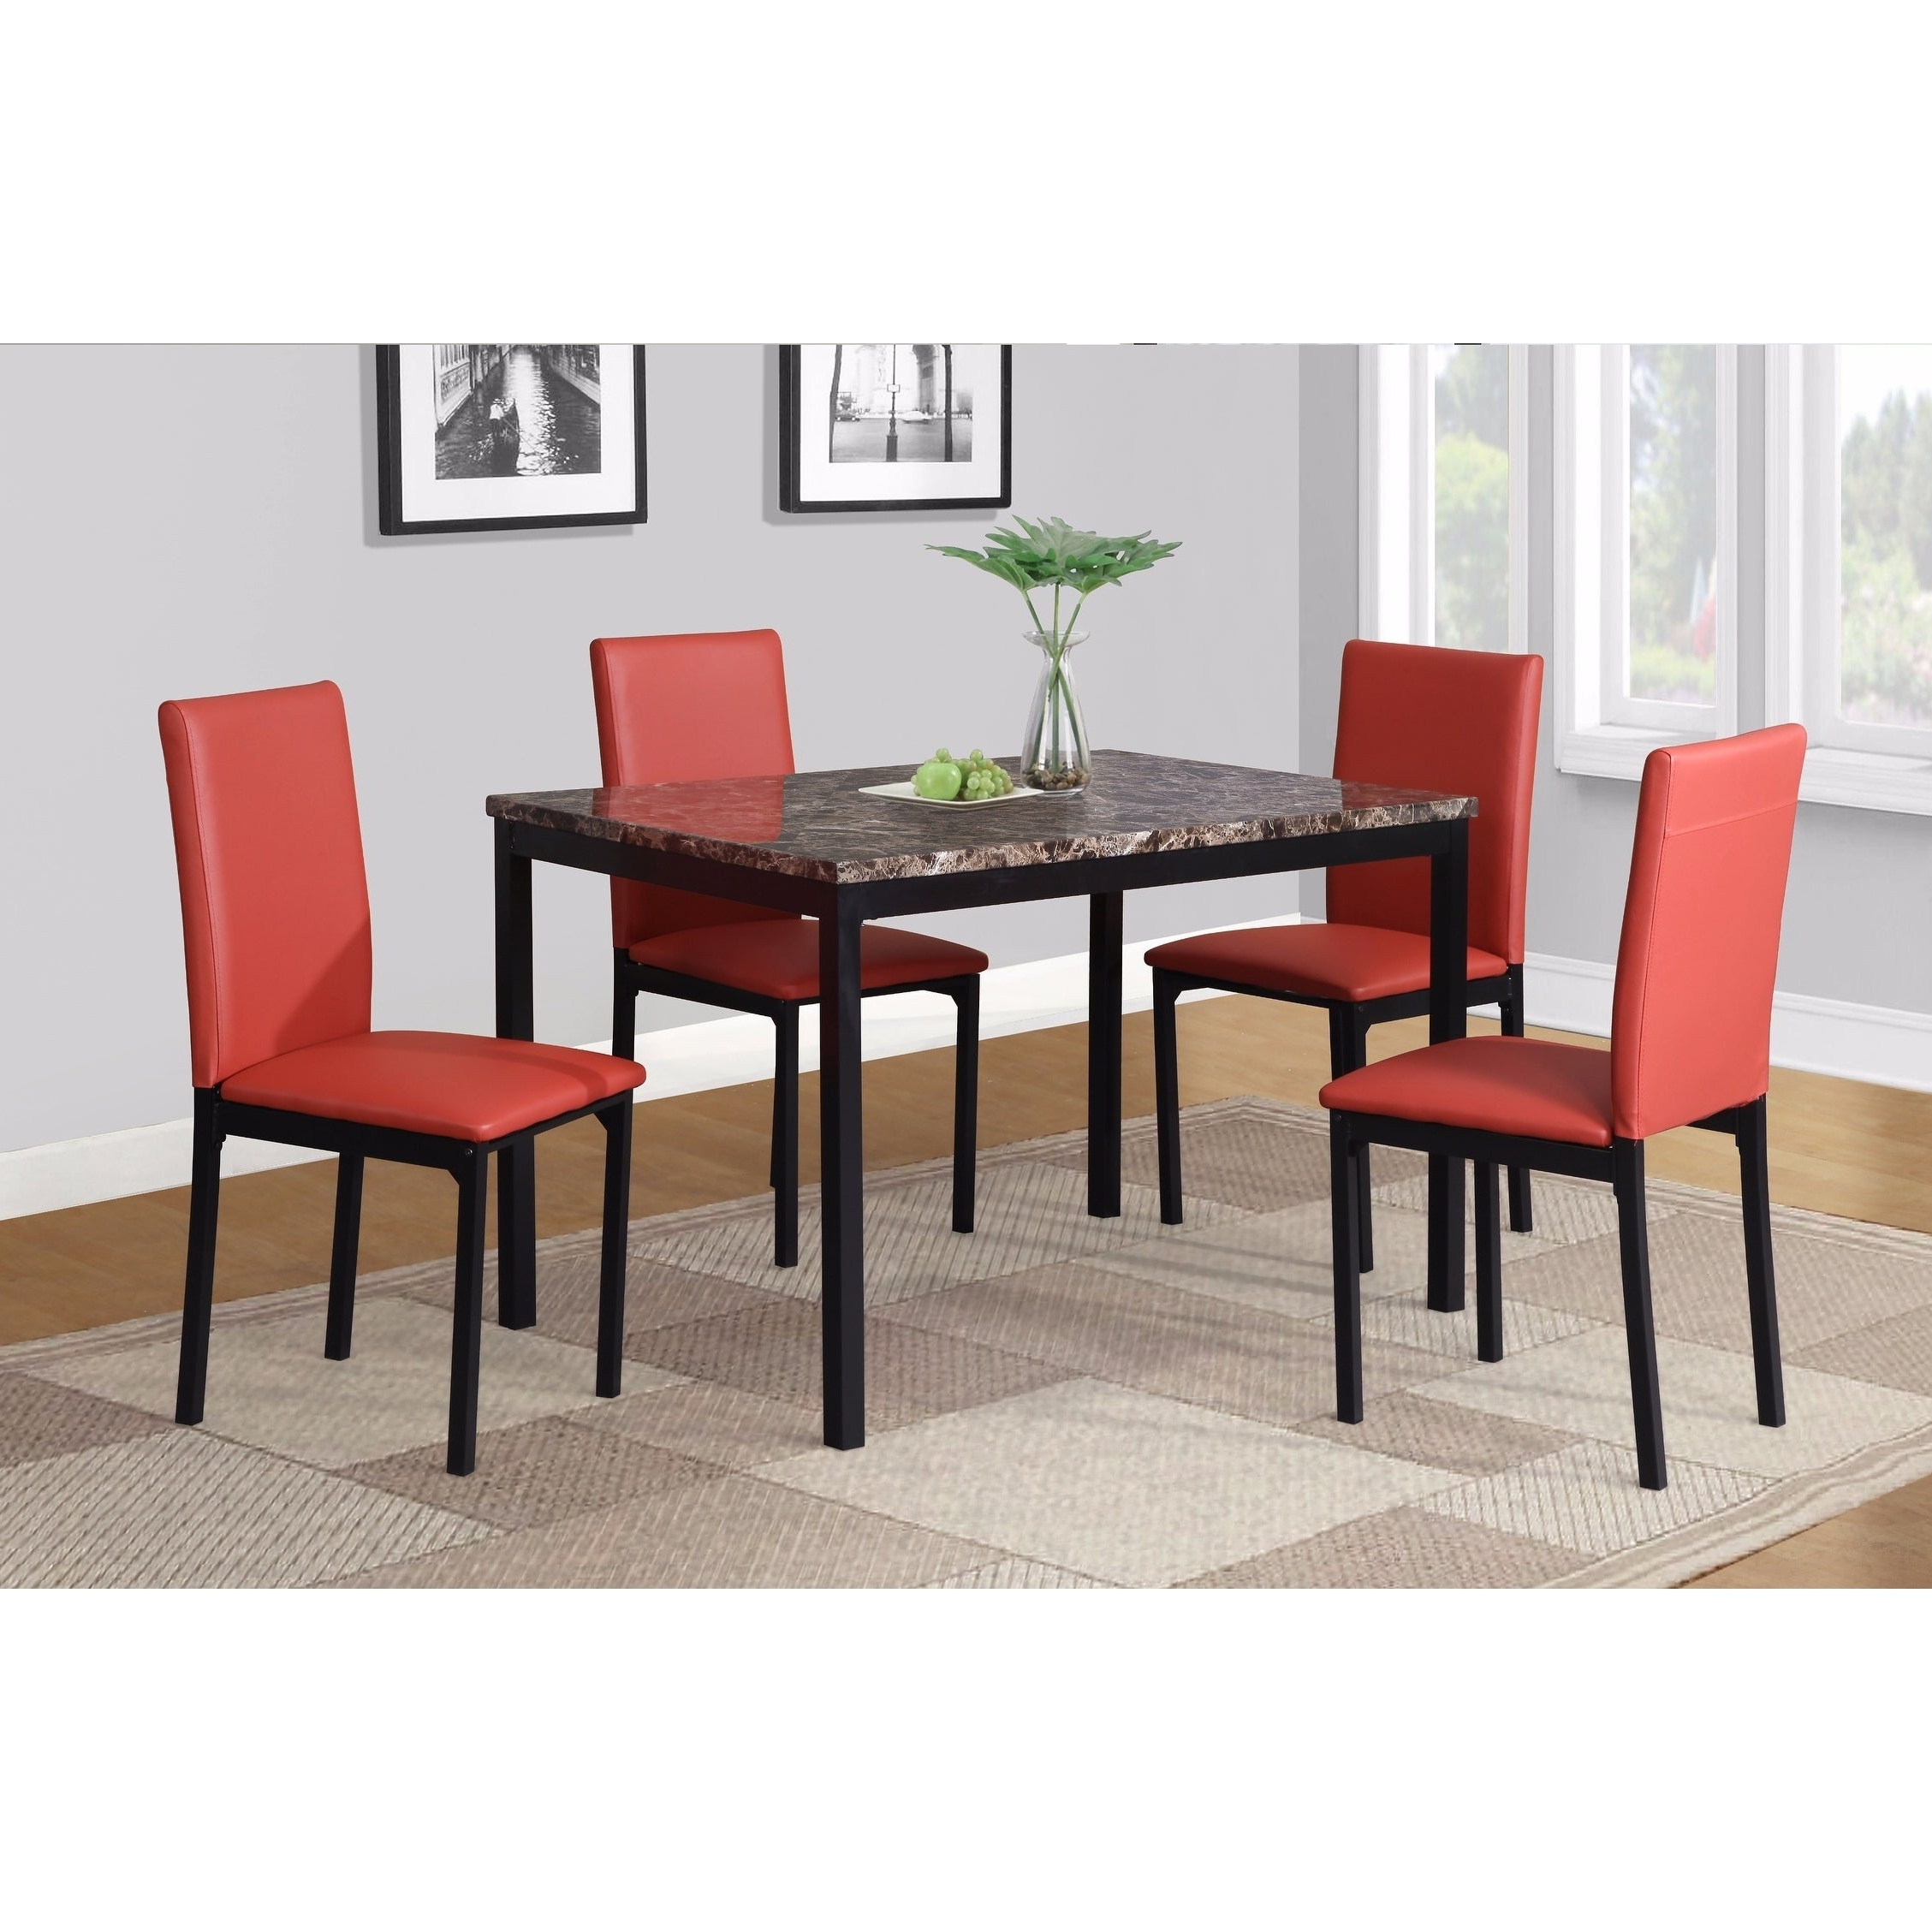 Shop Noyes Faux Leather Seat Metal Frame Black Dining Chairs, Set Of Within Well Known Noyes 5 Piece Dining Sets (View 6 of 25)